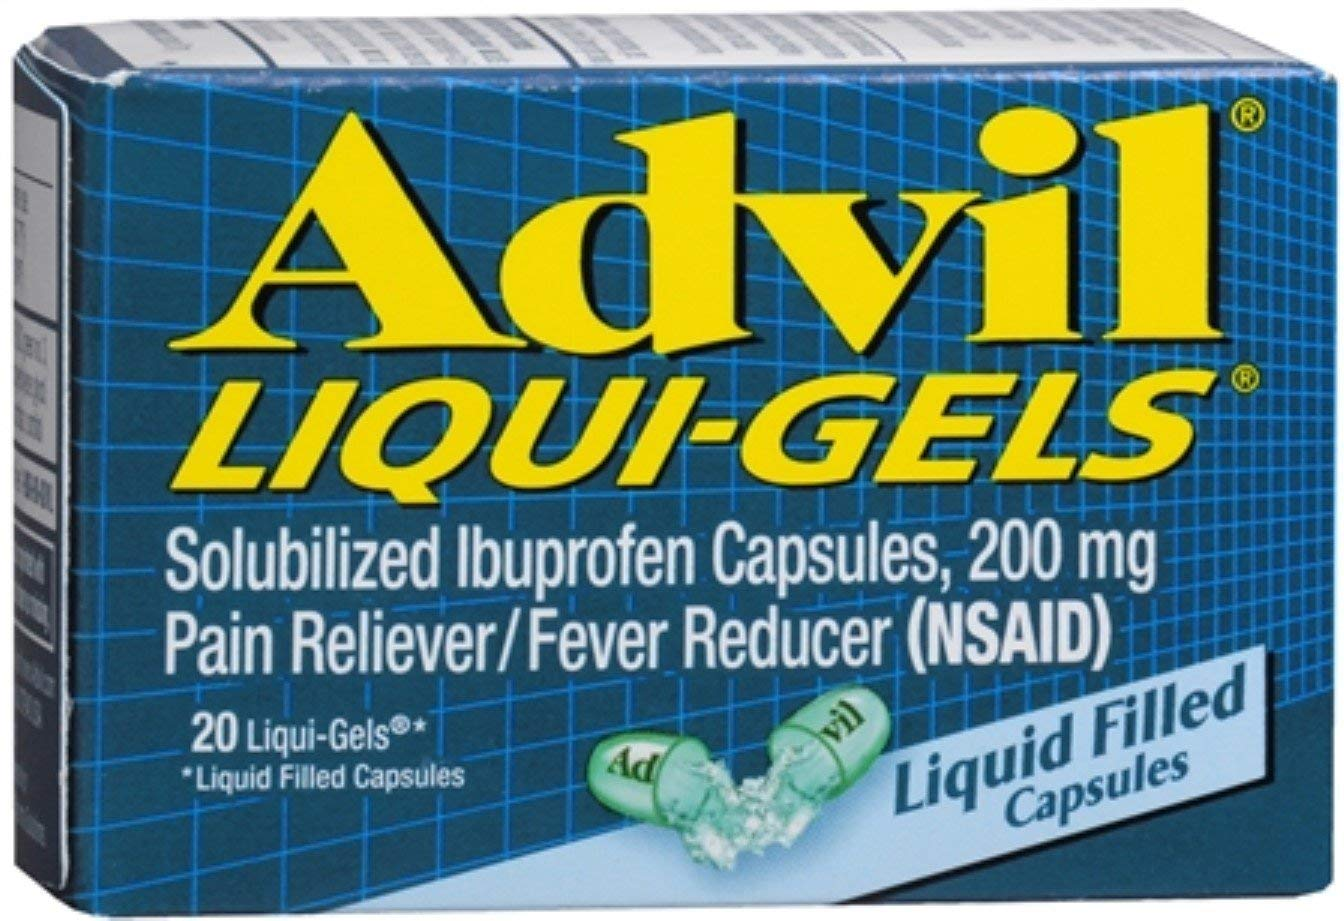 Advil Liqui-Gels - 20 Liquid Filled Capsules